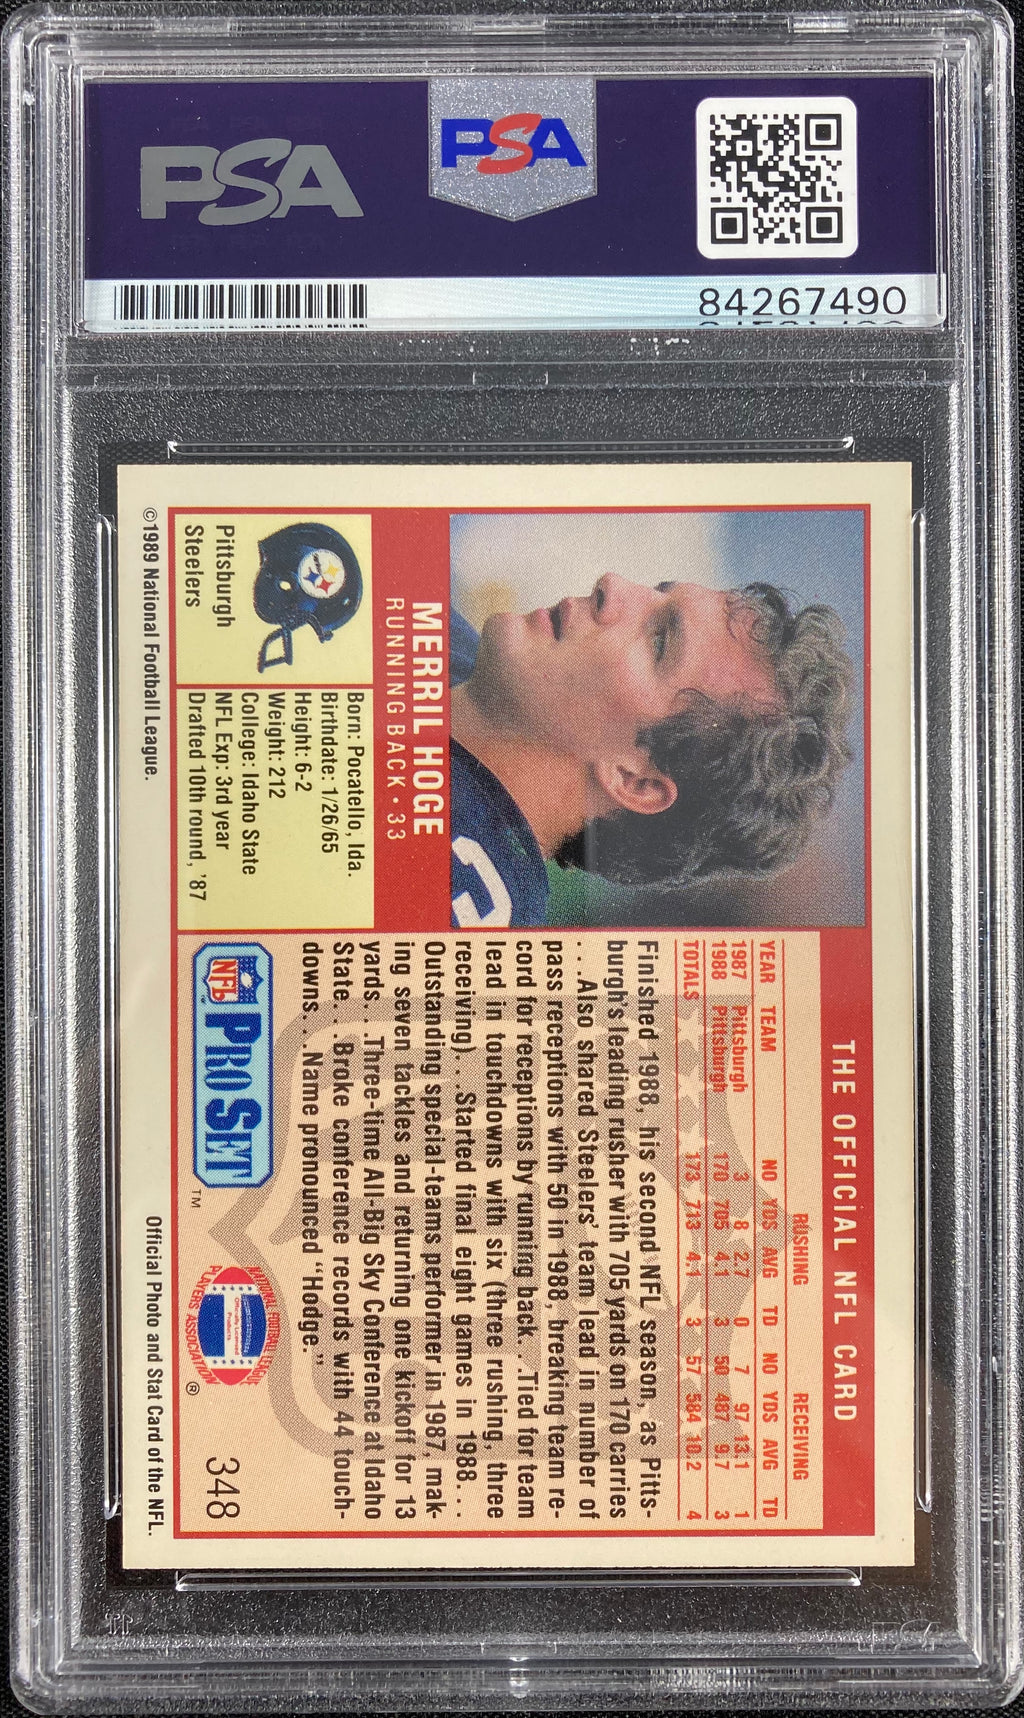 Merril Hoge auto signed card NFL '89 #348 Pittsburgh Steelers PSA Encapsulated - JAG Sports Marketing